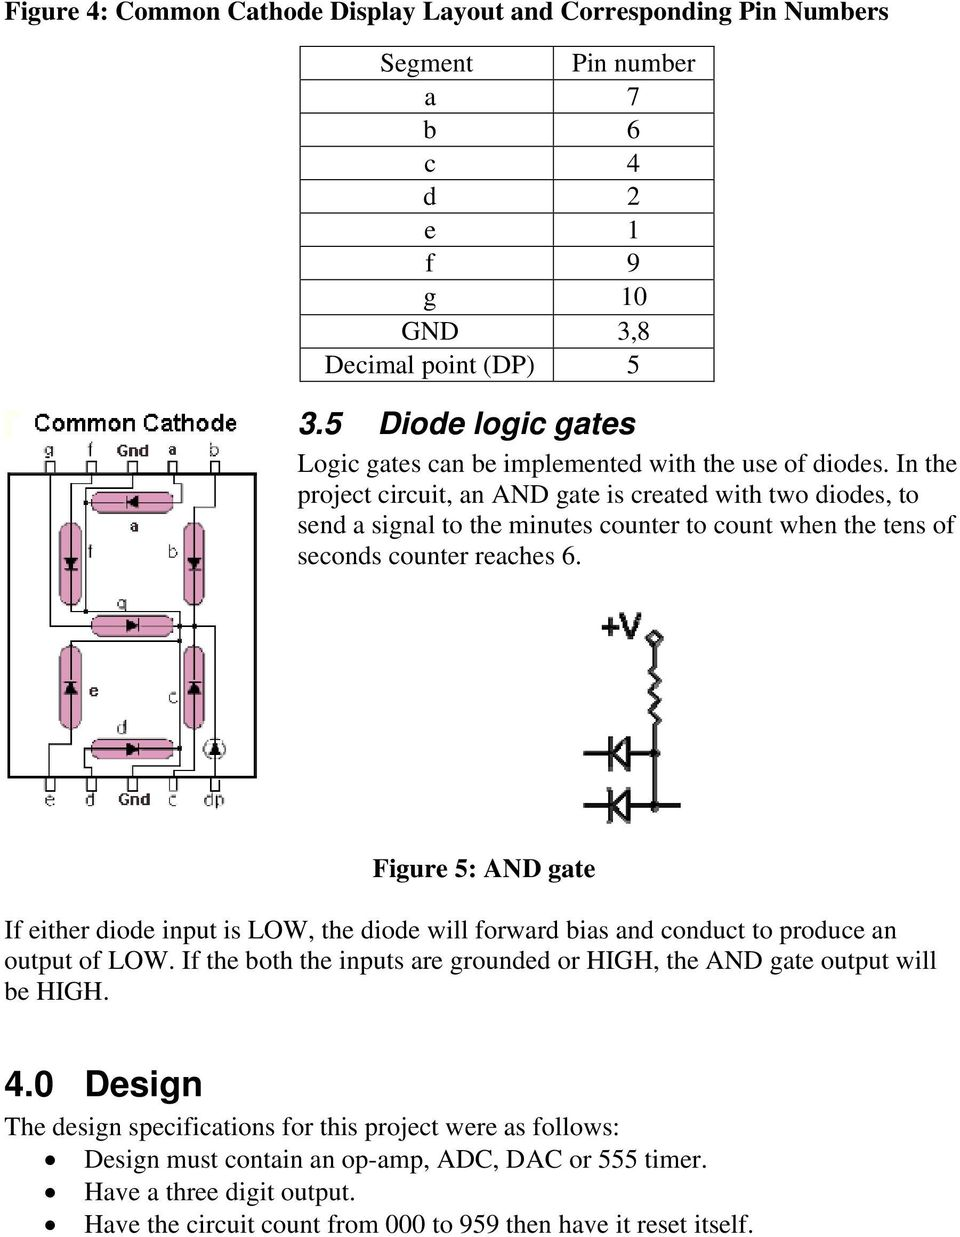 A Digital Timer Implementation Using 7 Segment Displays Pdf 555timer Alternating Blinking Led Circuit Issue In The Project An And Gate Is Created With Two Diodes To Send